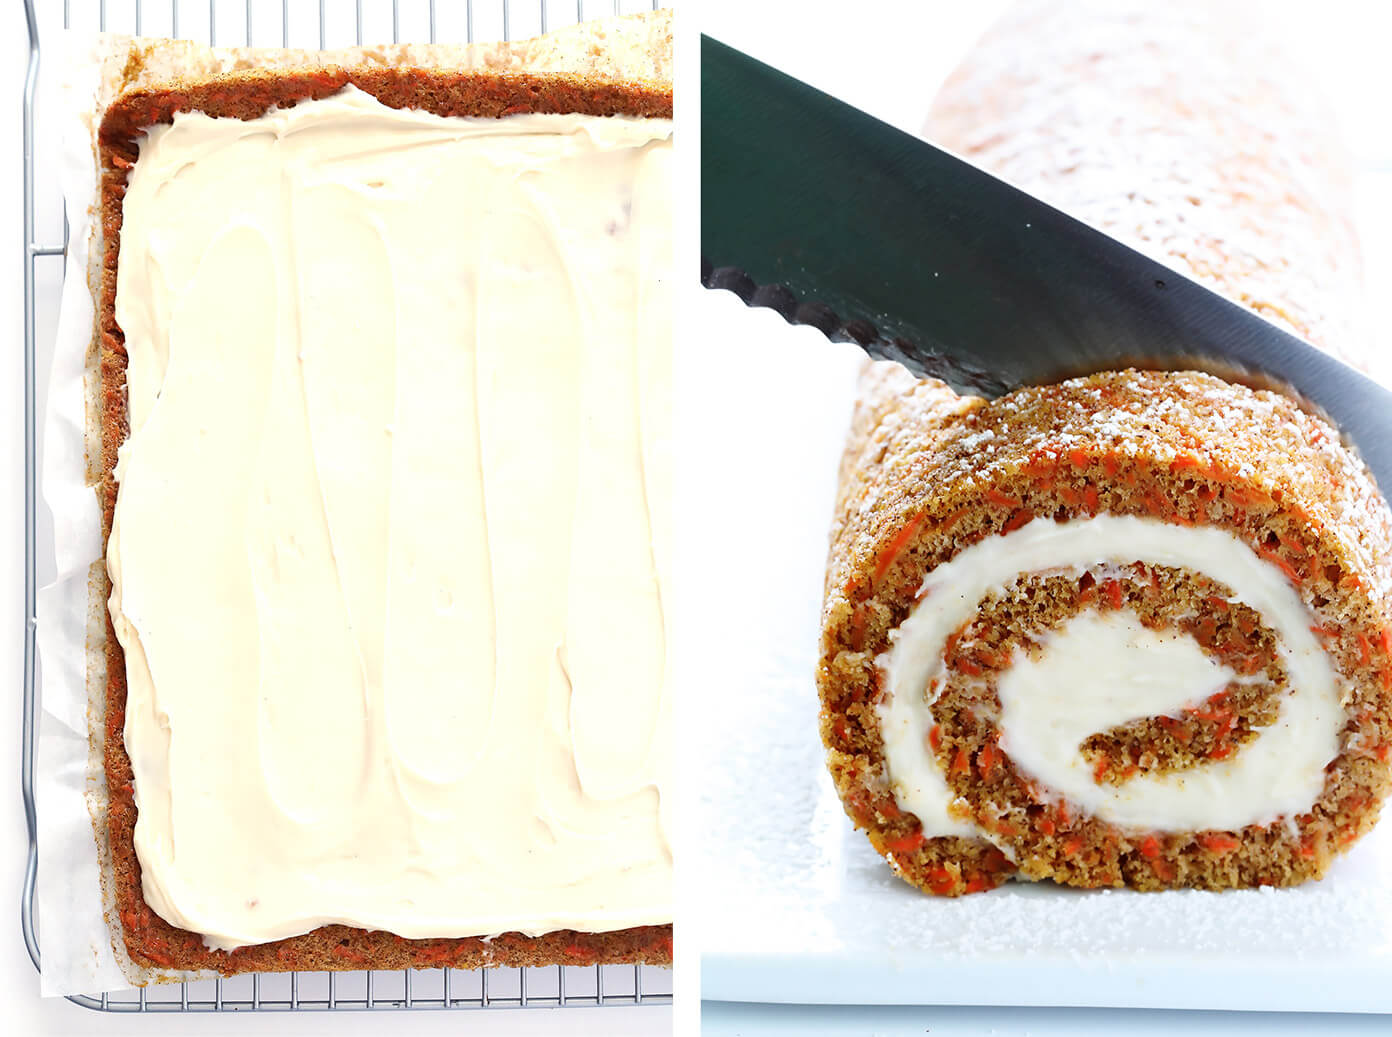 Have you ever tried rolling up your carrot cake?  It's fun and totally delicious with this Carrot Cake Roll recipe! | gimmesomeoven.com